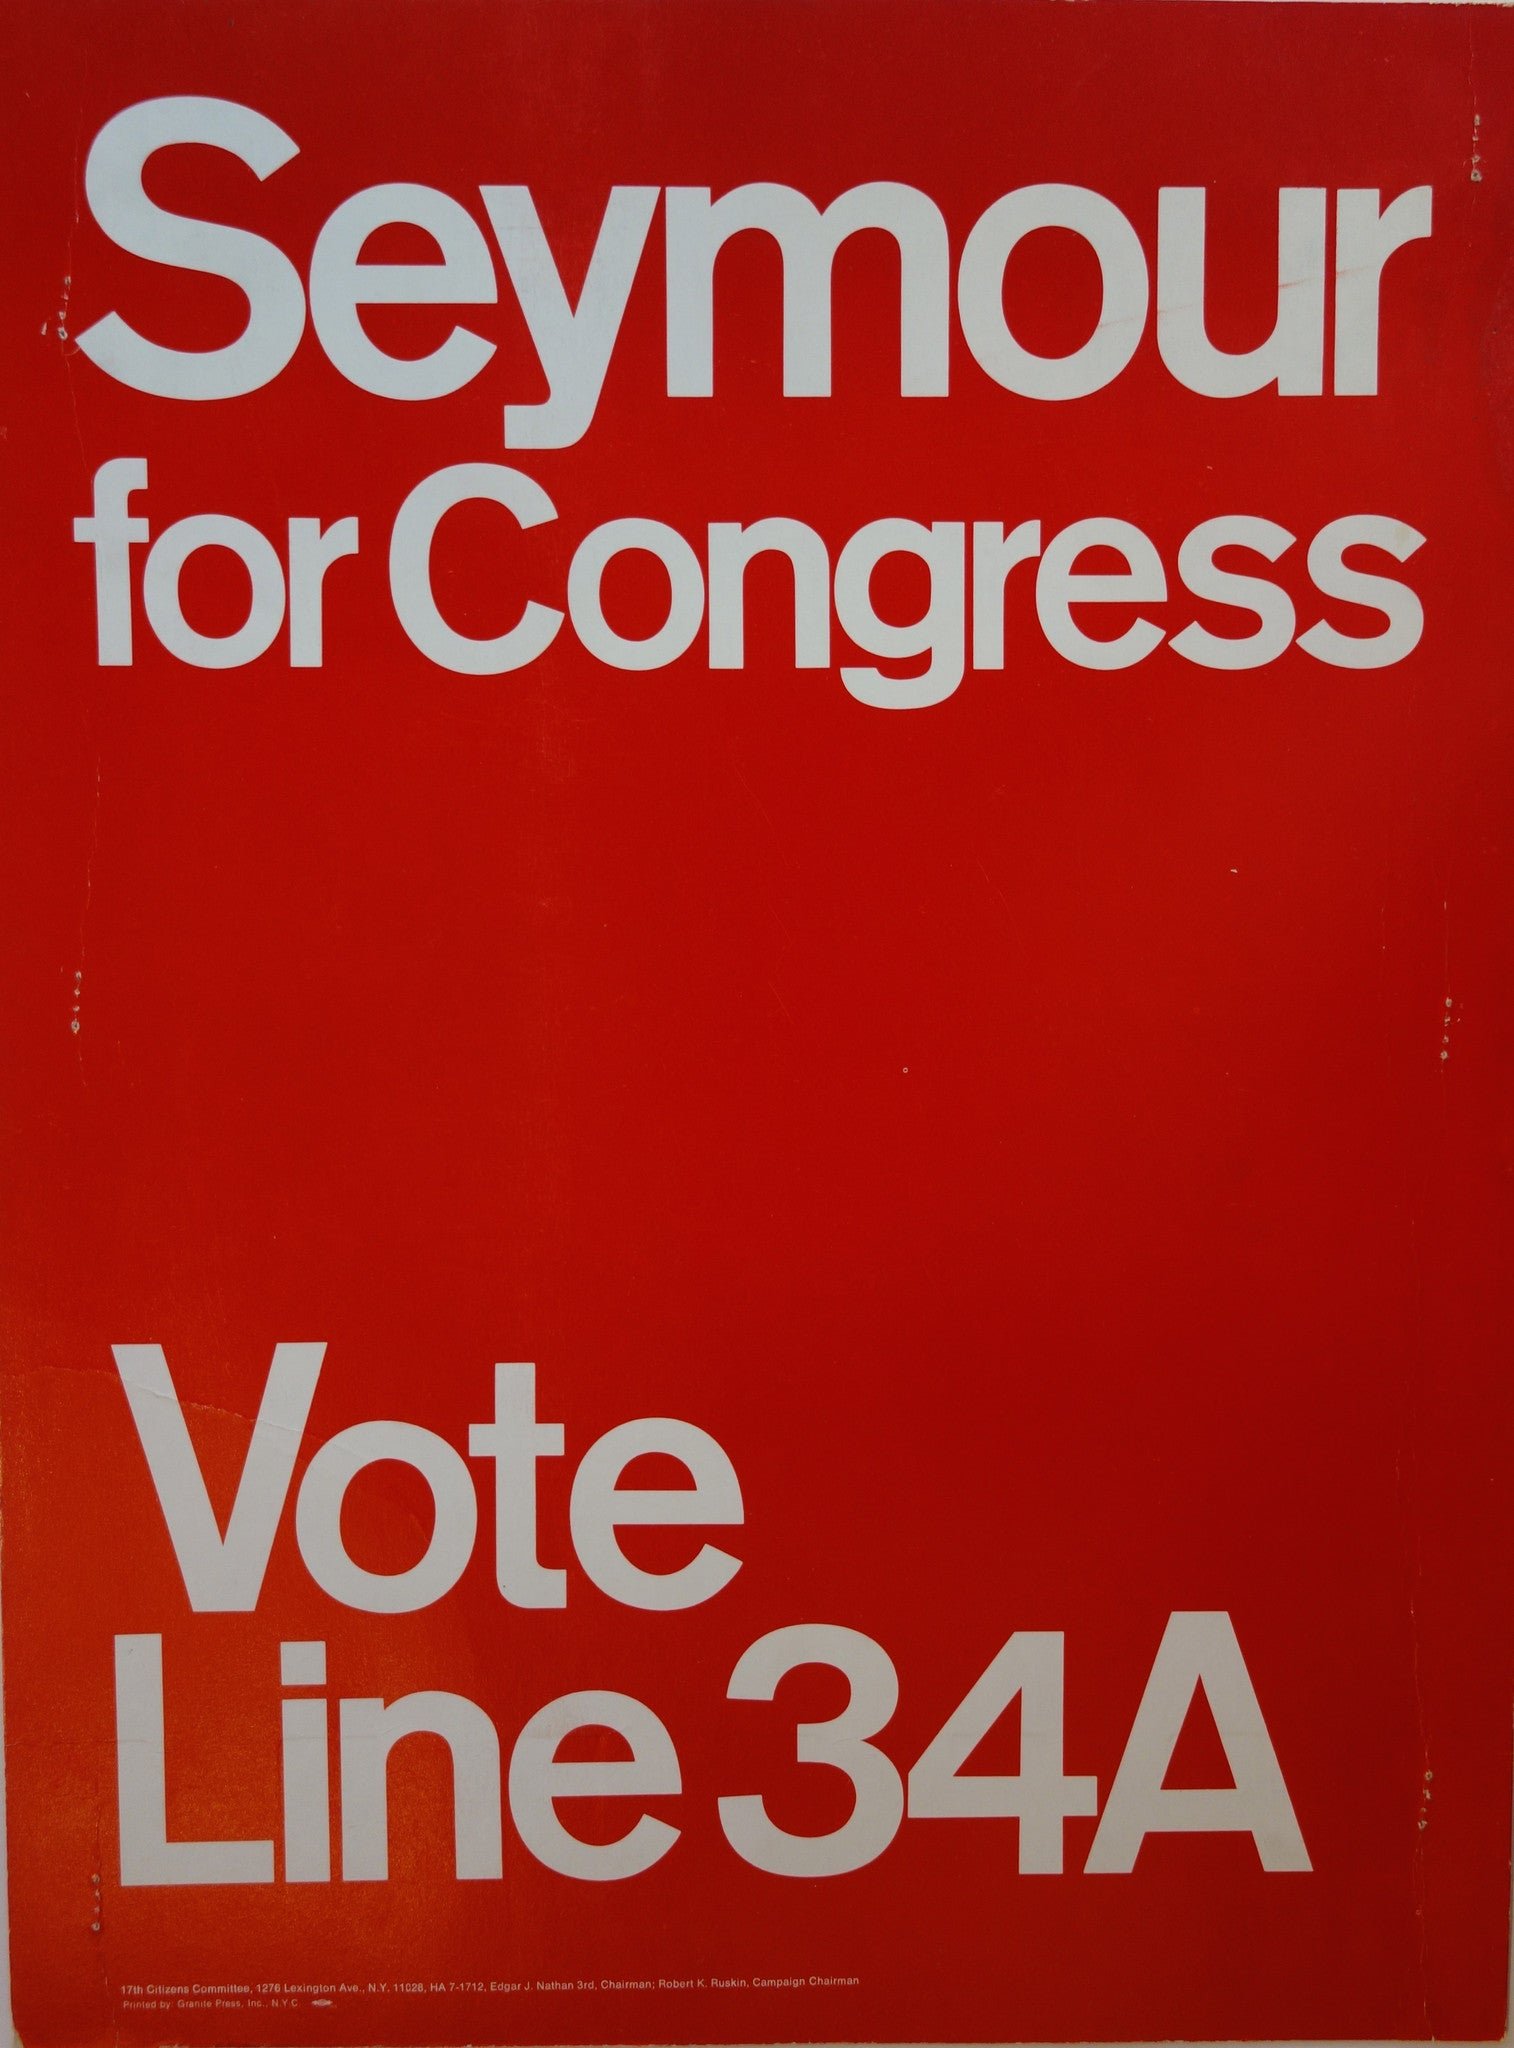 Seymour for Congress Red